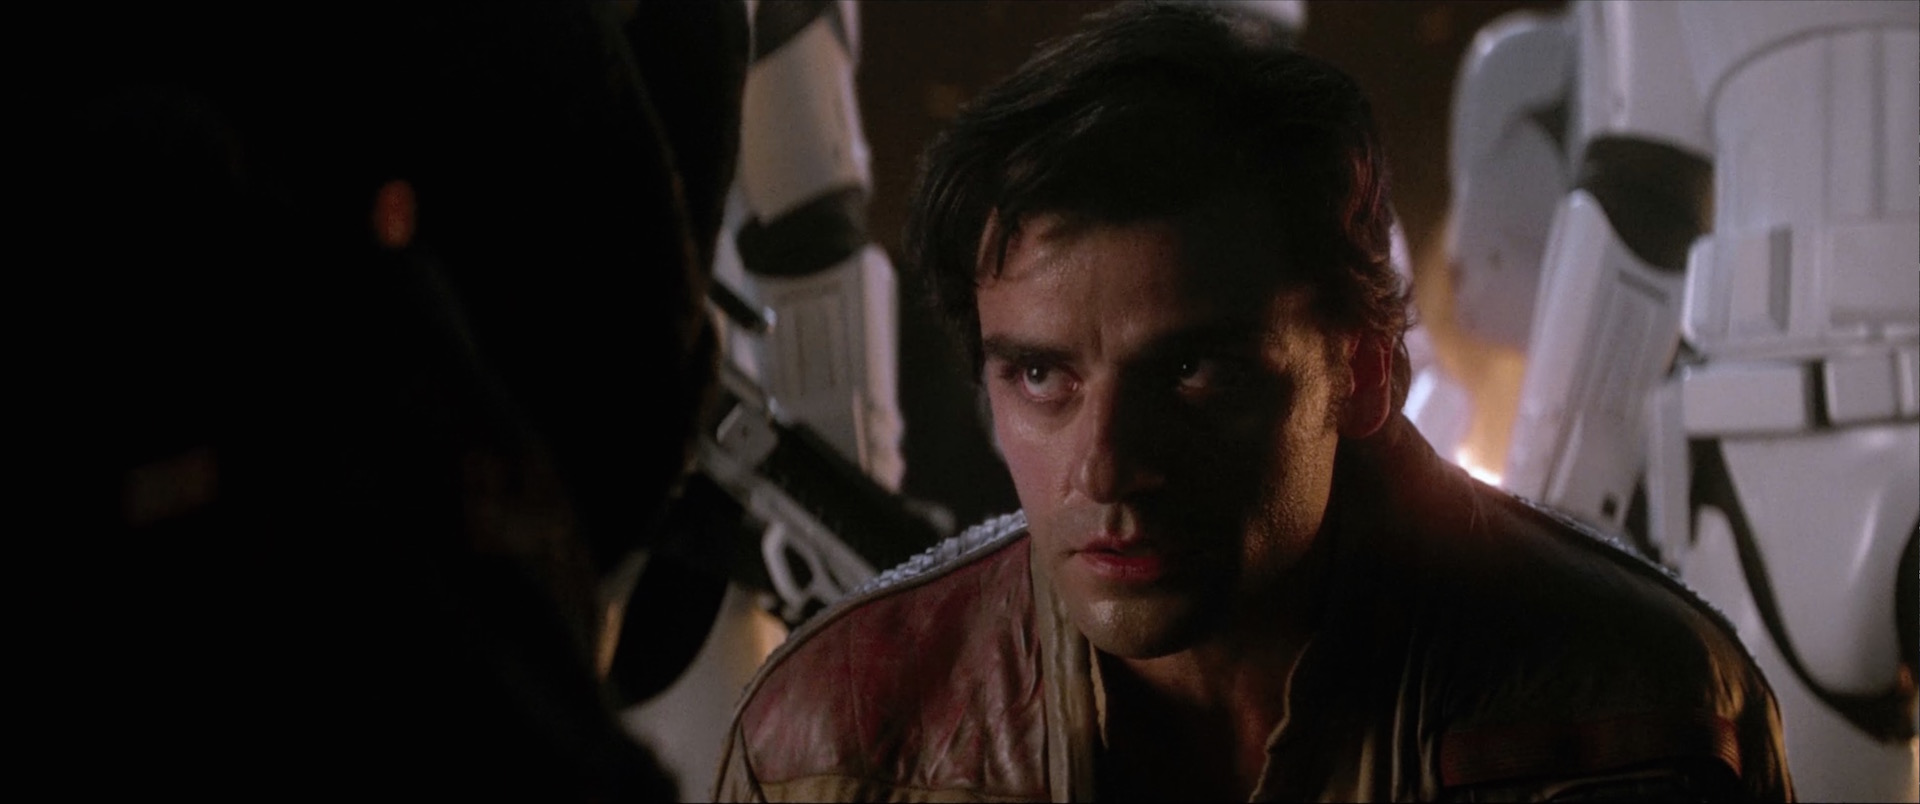 Poe Dameron faces Kylo Ren in Star Wars: The Force Awakens.